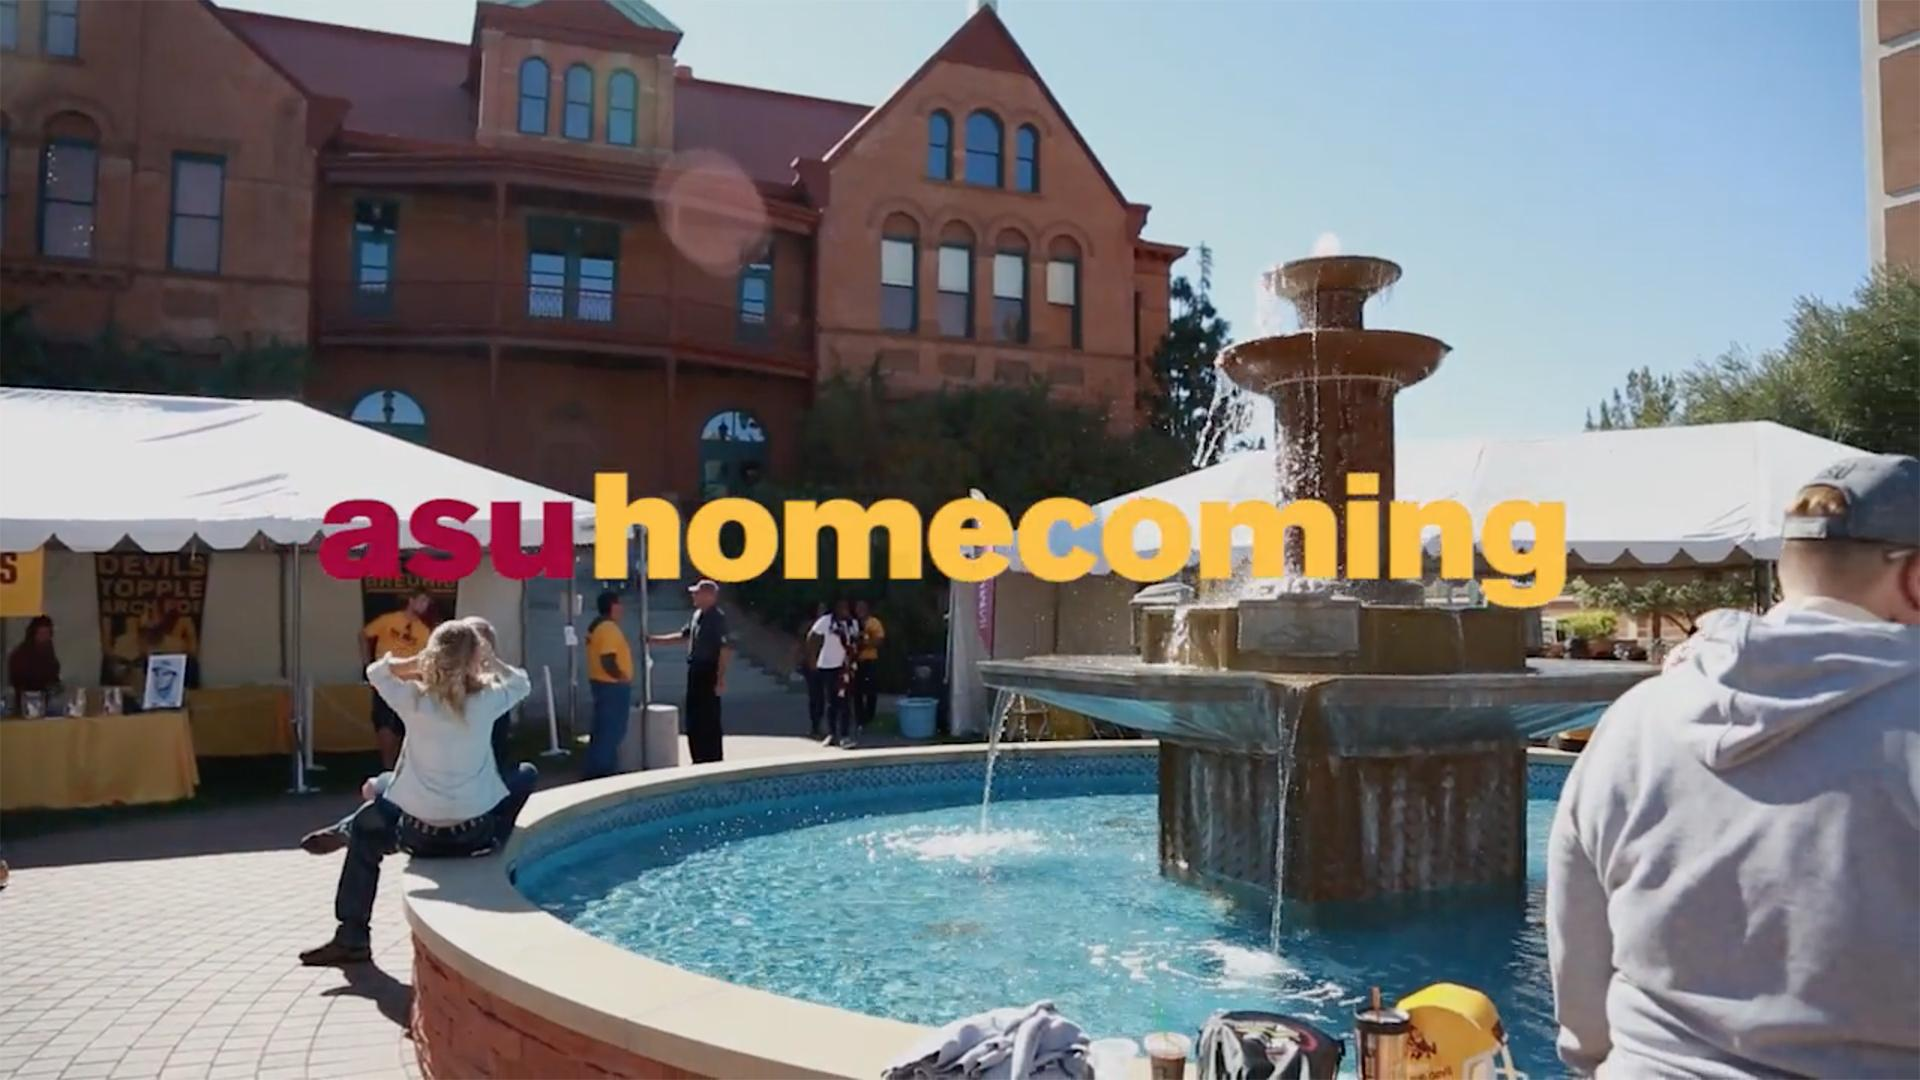 ASU homecoming